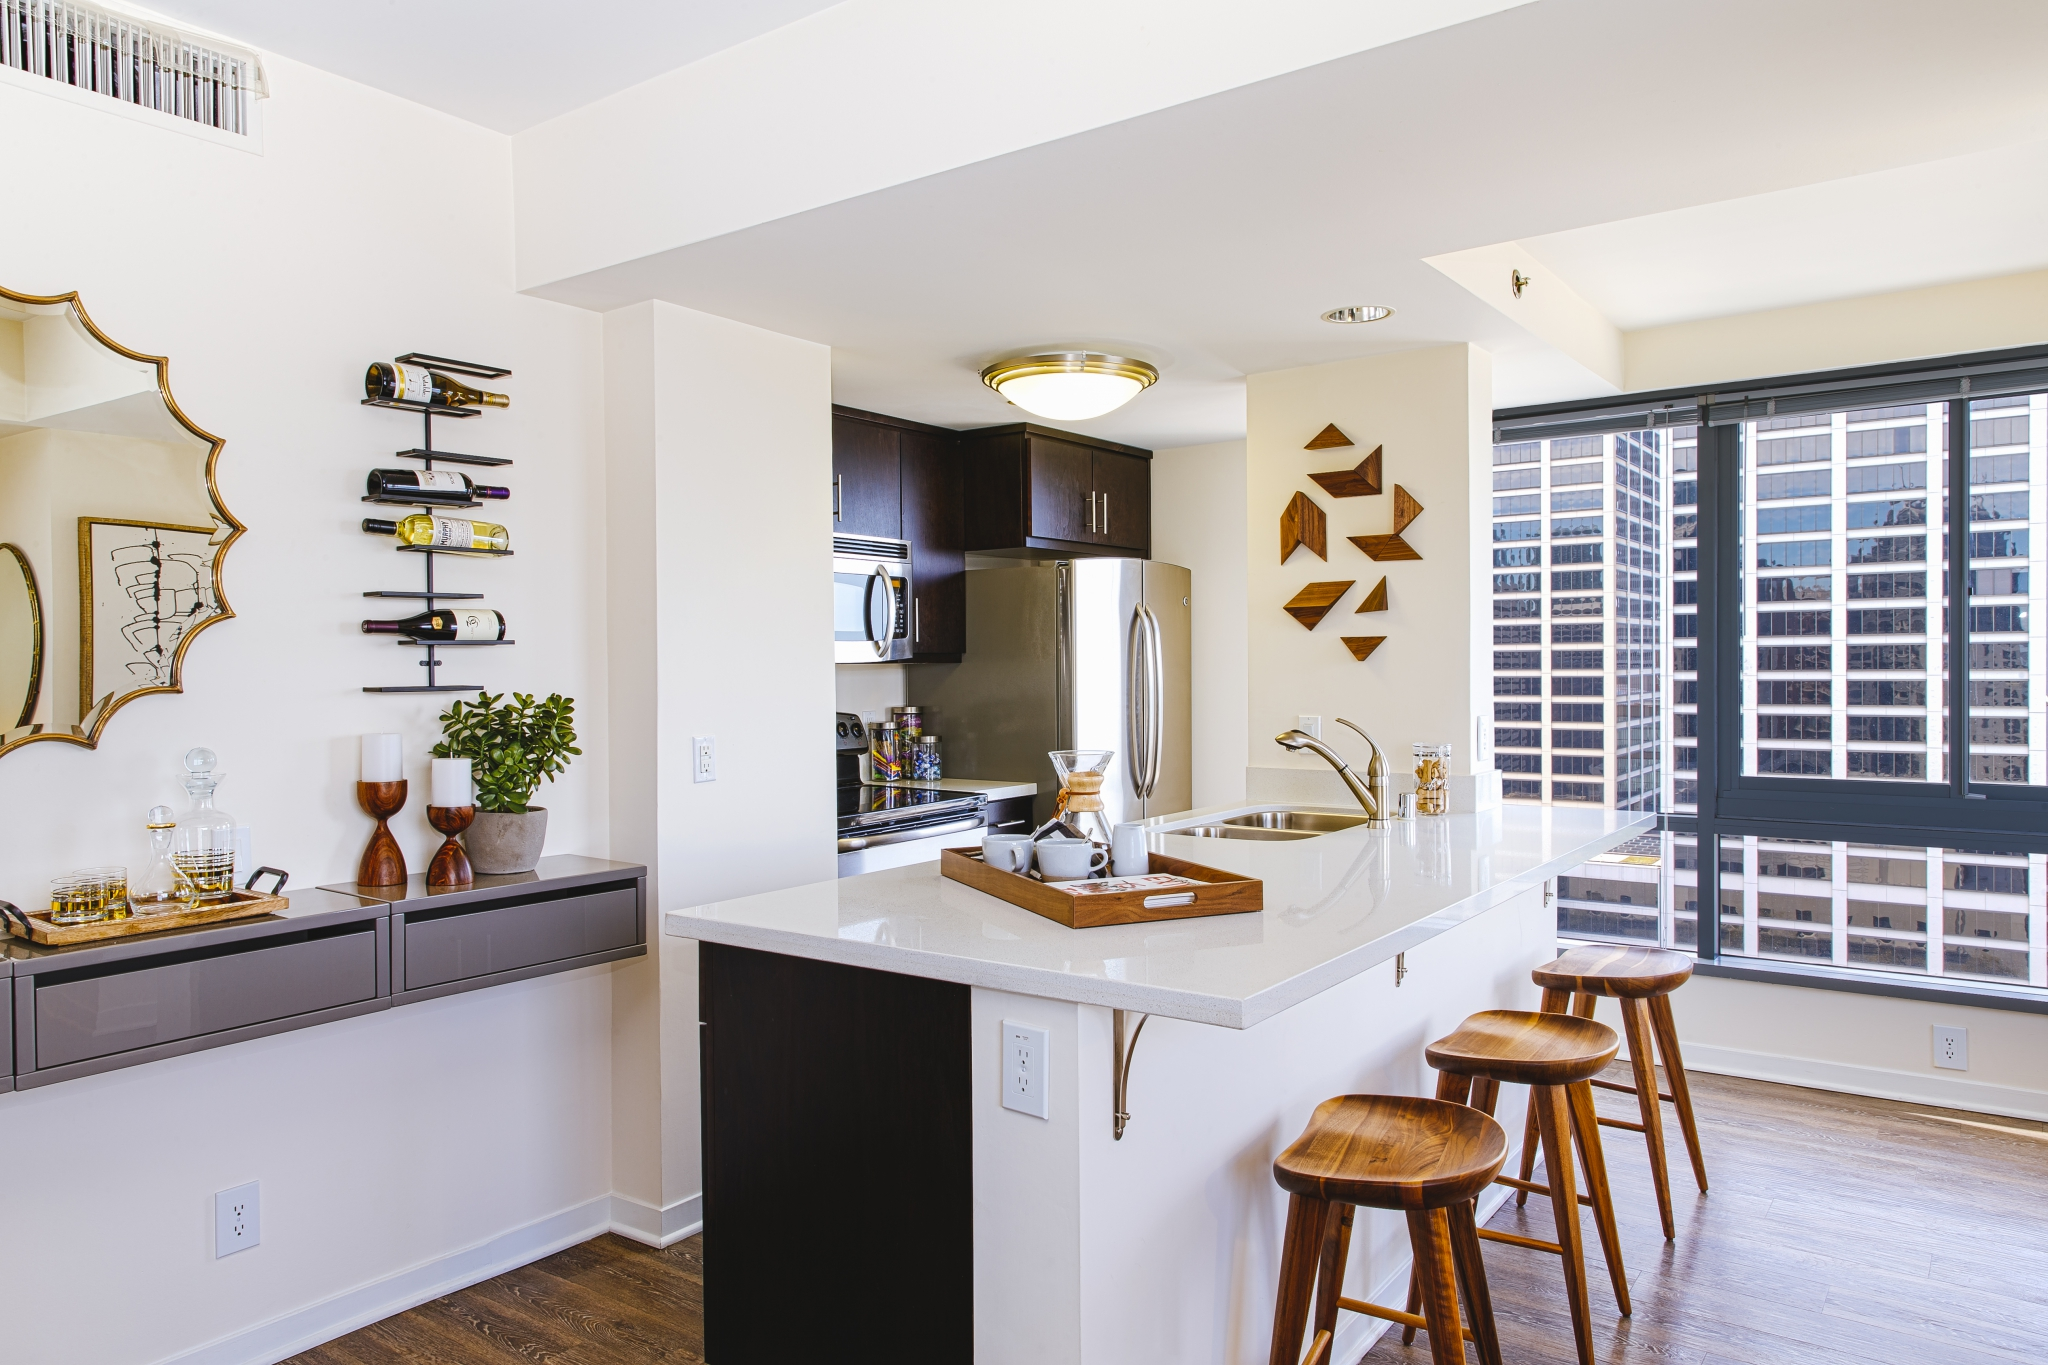 White kitchen with countertop bar, barstools and stainless steel appliances.